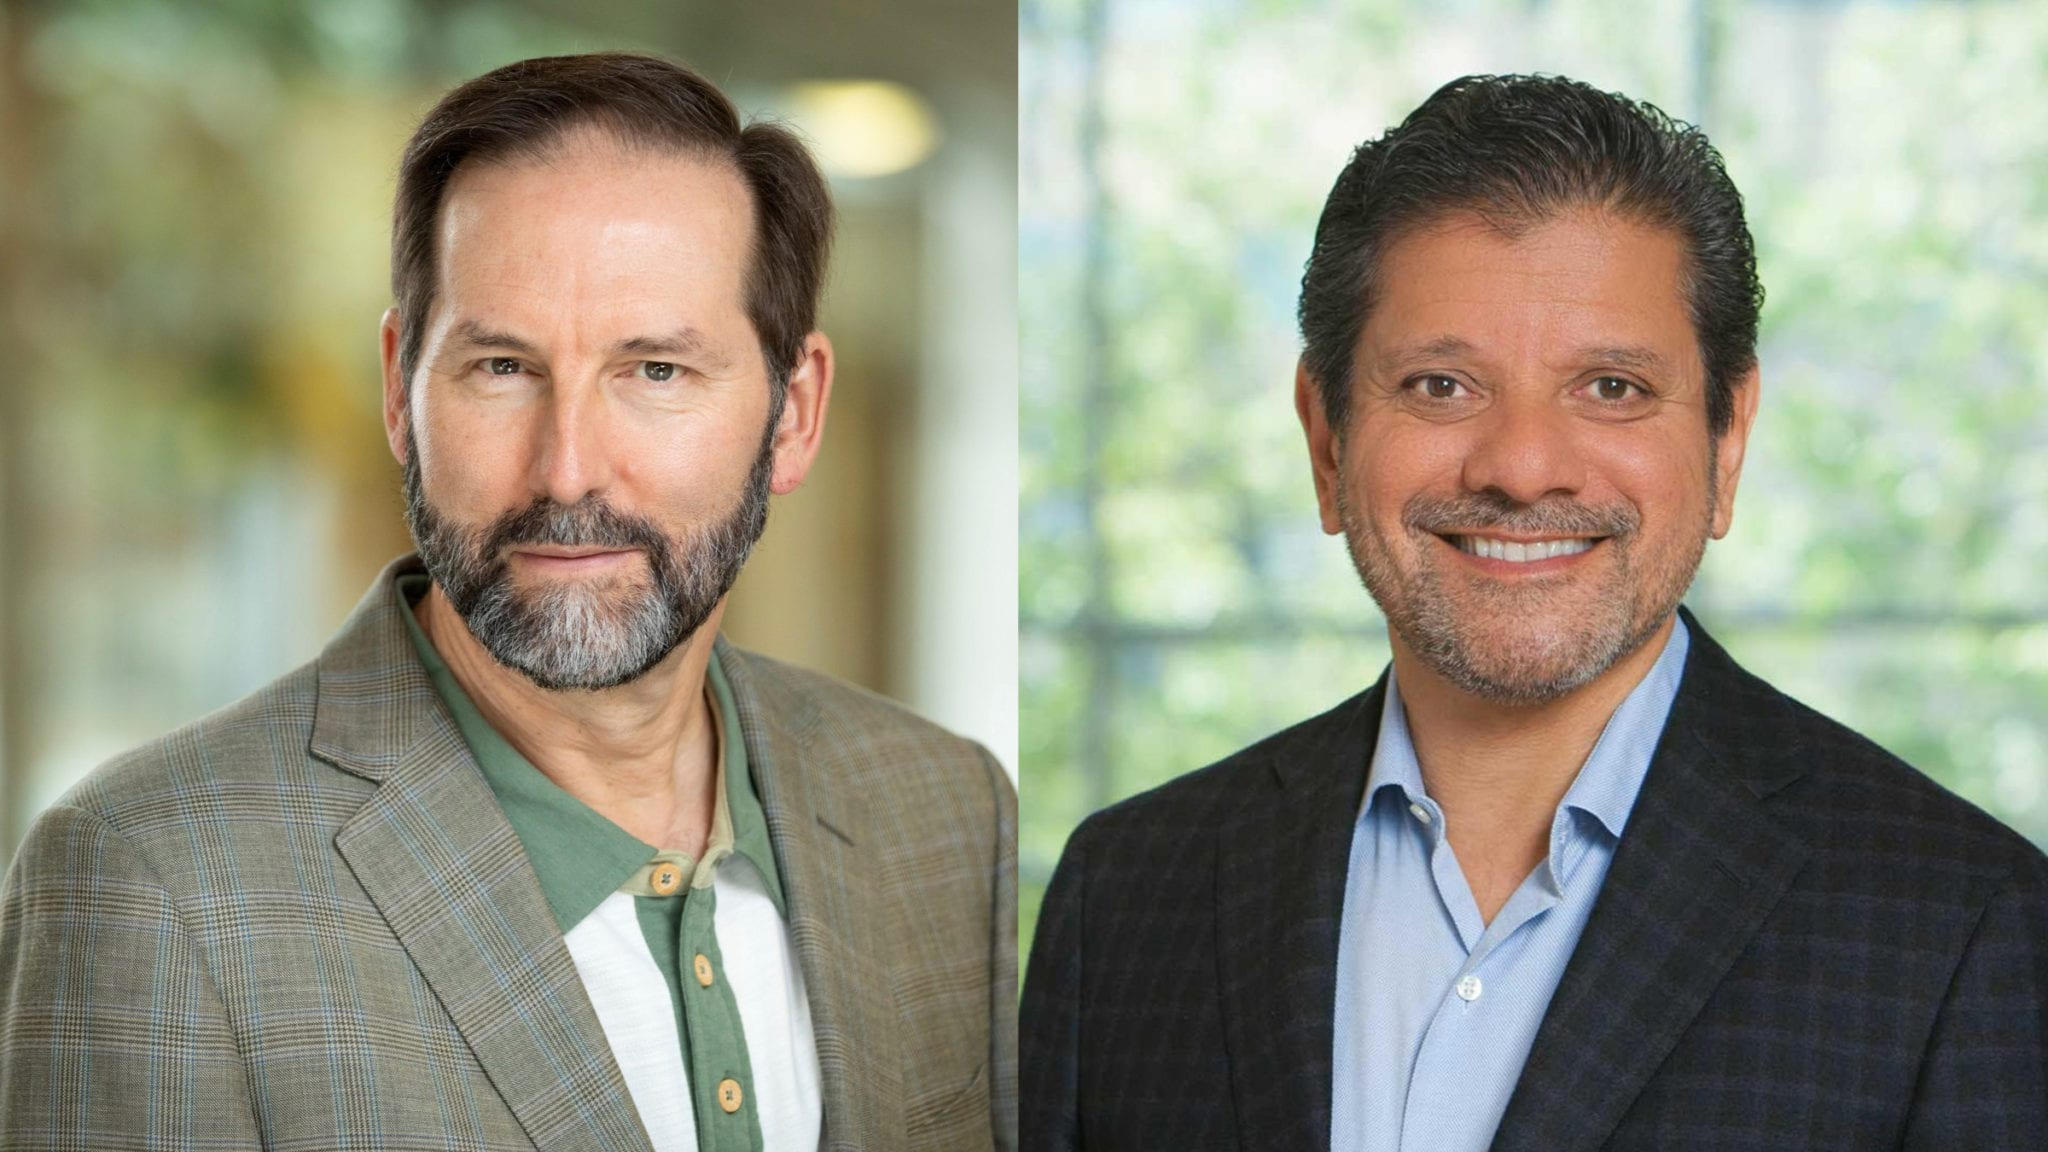 George Golumbeski and Faheem Hasnain team up with Vertex Ventures HC in managing $320M of biotech cash